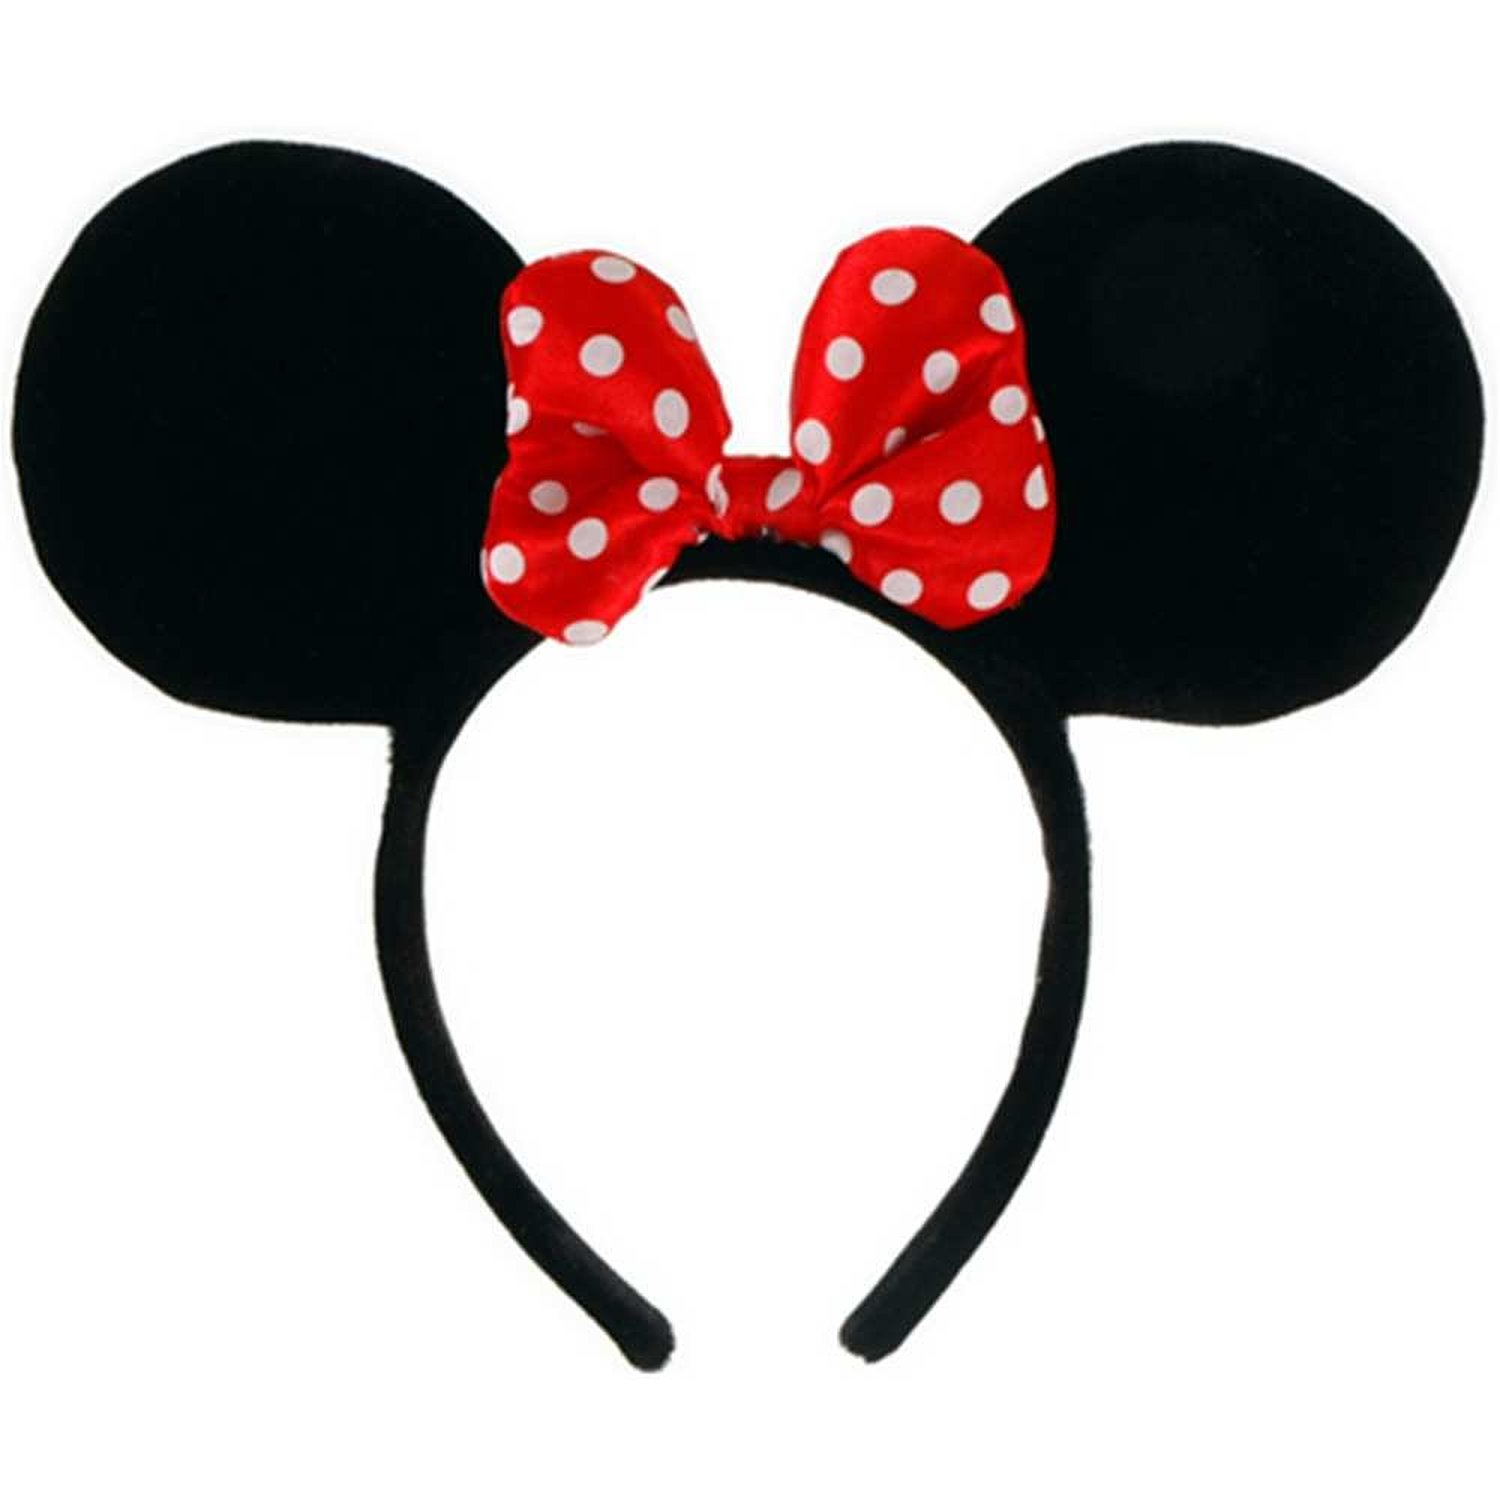 Free Minnie Mouse Ears Png, Download Free Clip Art, Free.